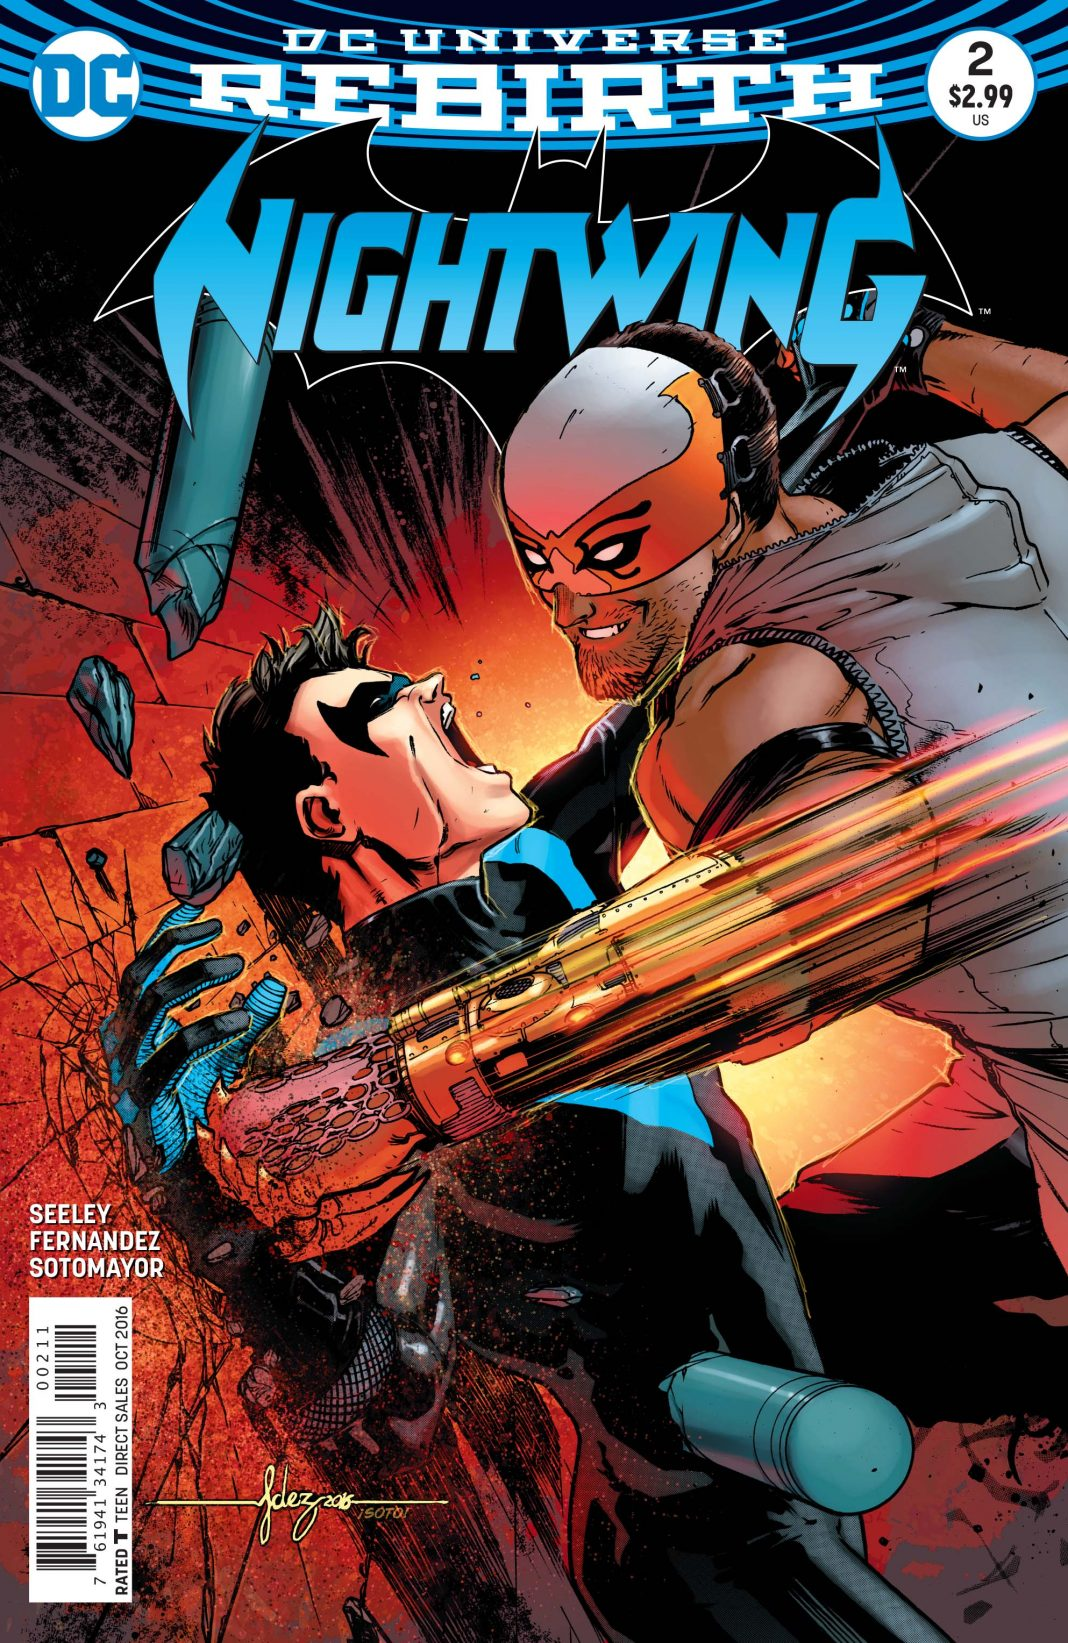 Nightwing #2 Review: Never a Dull Moment